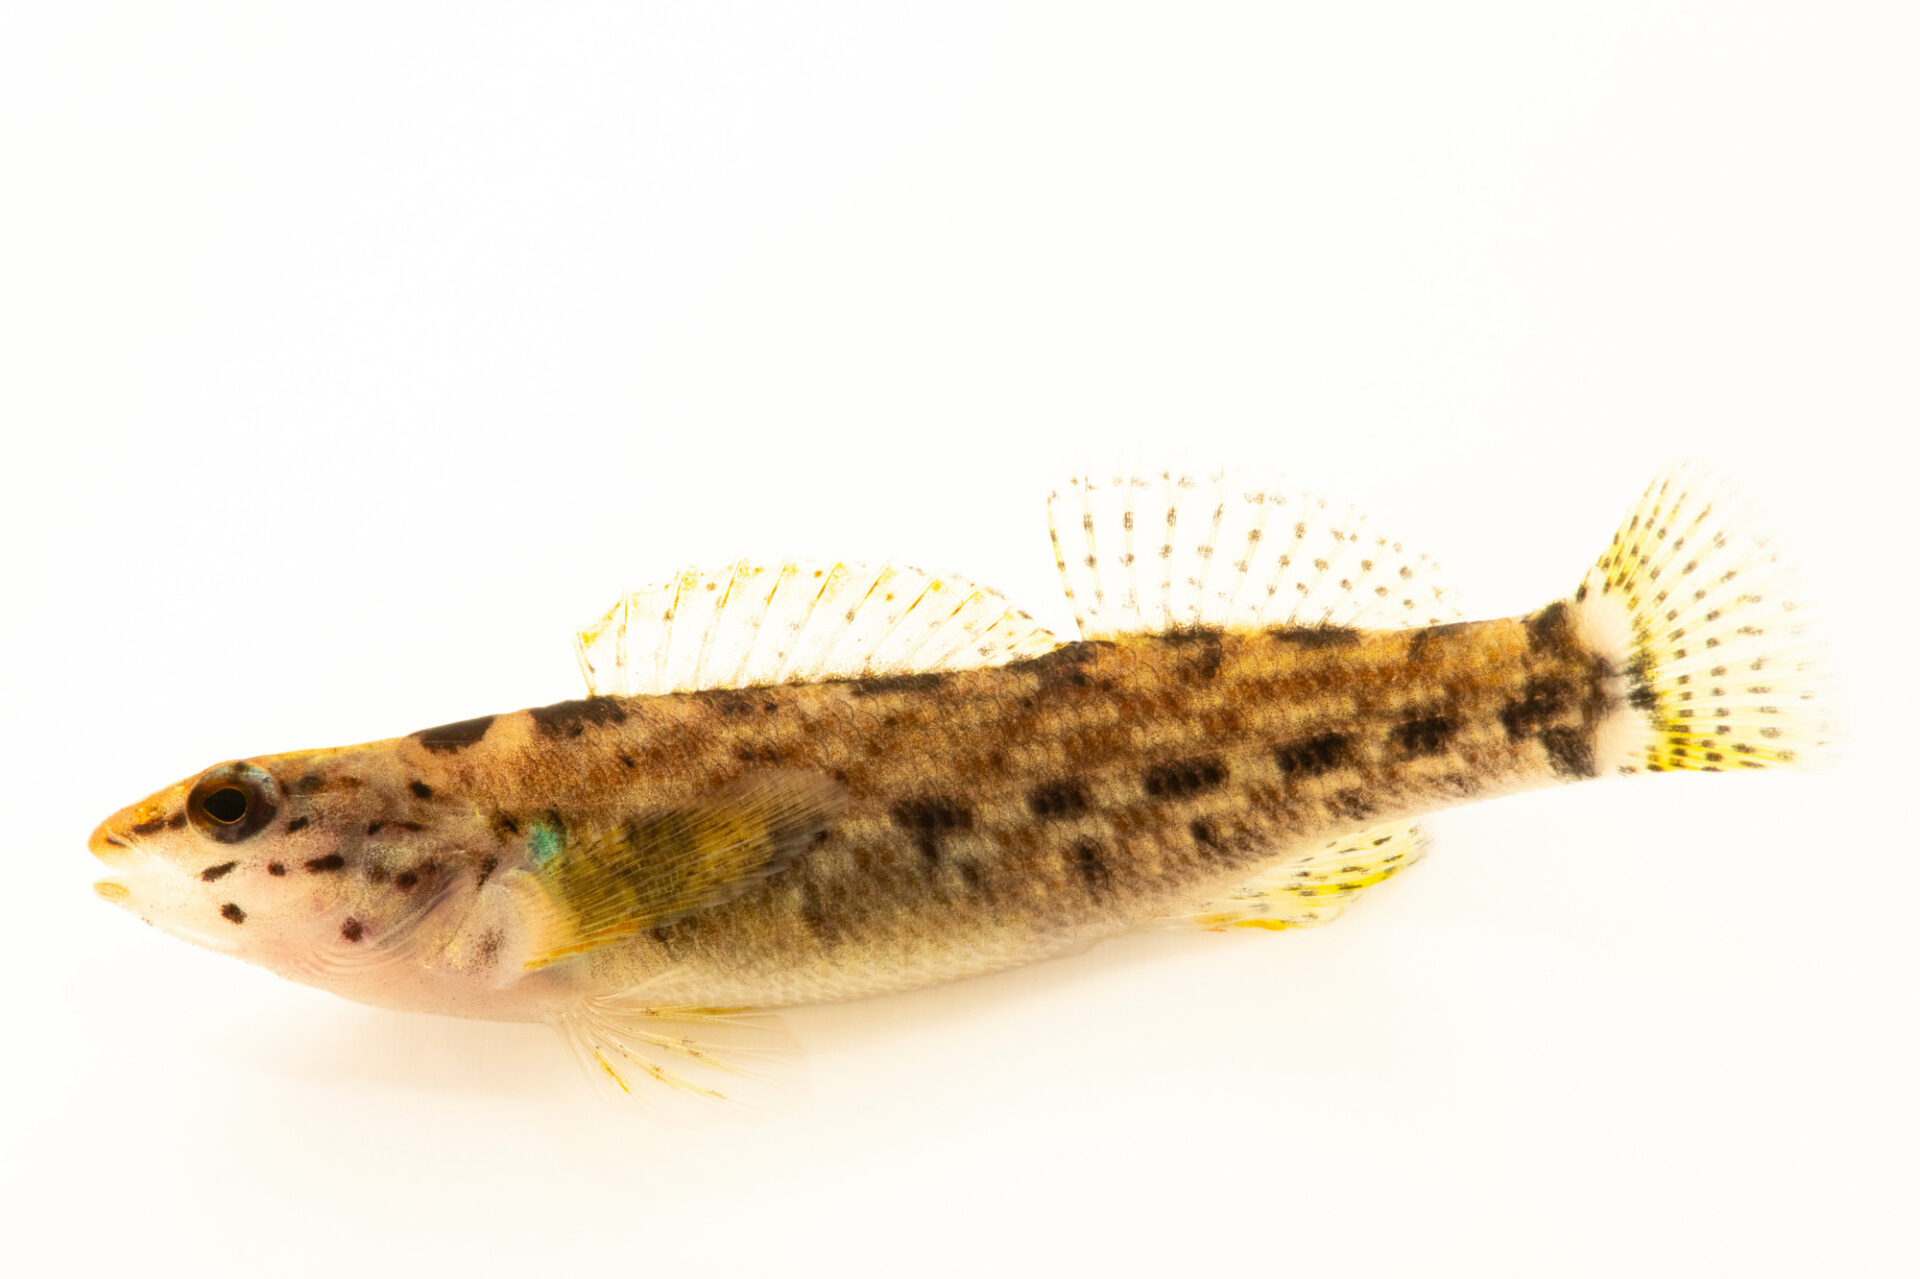 Photo: A female redline darter (Etheostoma rufilineatum) photographed at the Alabama Aquatic Biodiversity Center in Marion, AL. This fish was collected from Butler Creek, Lauderdale County, AL.